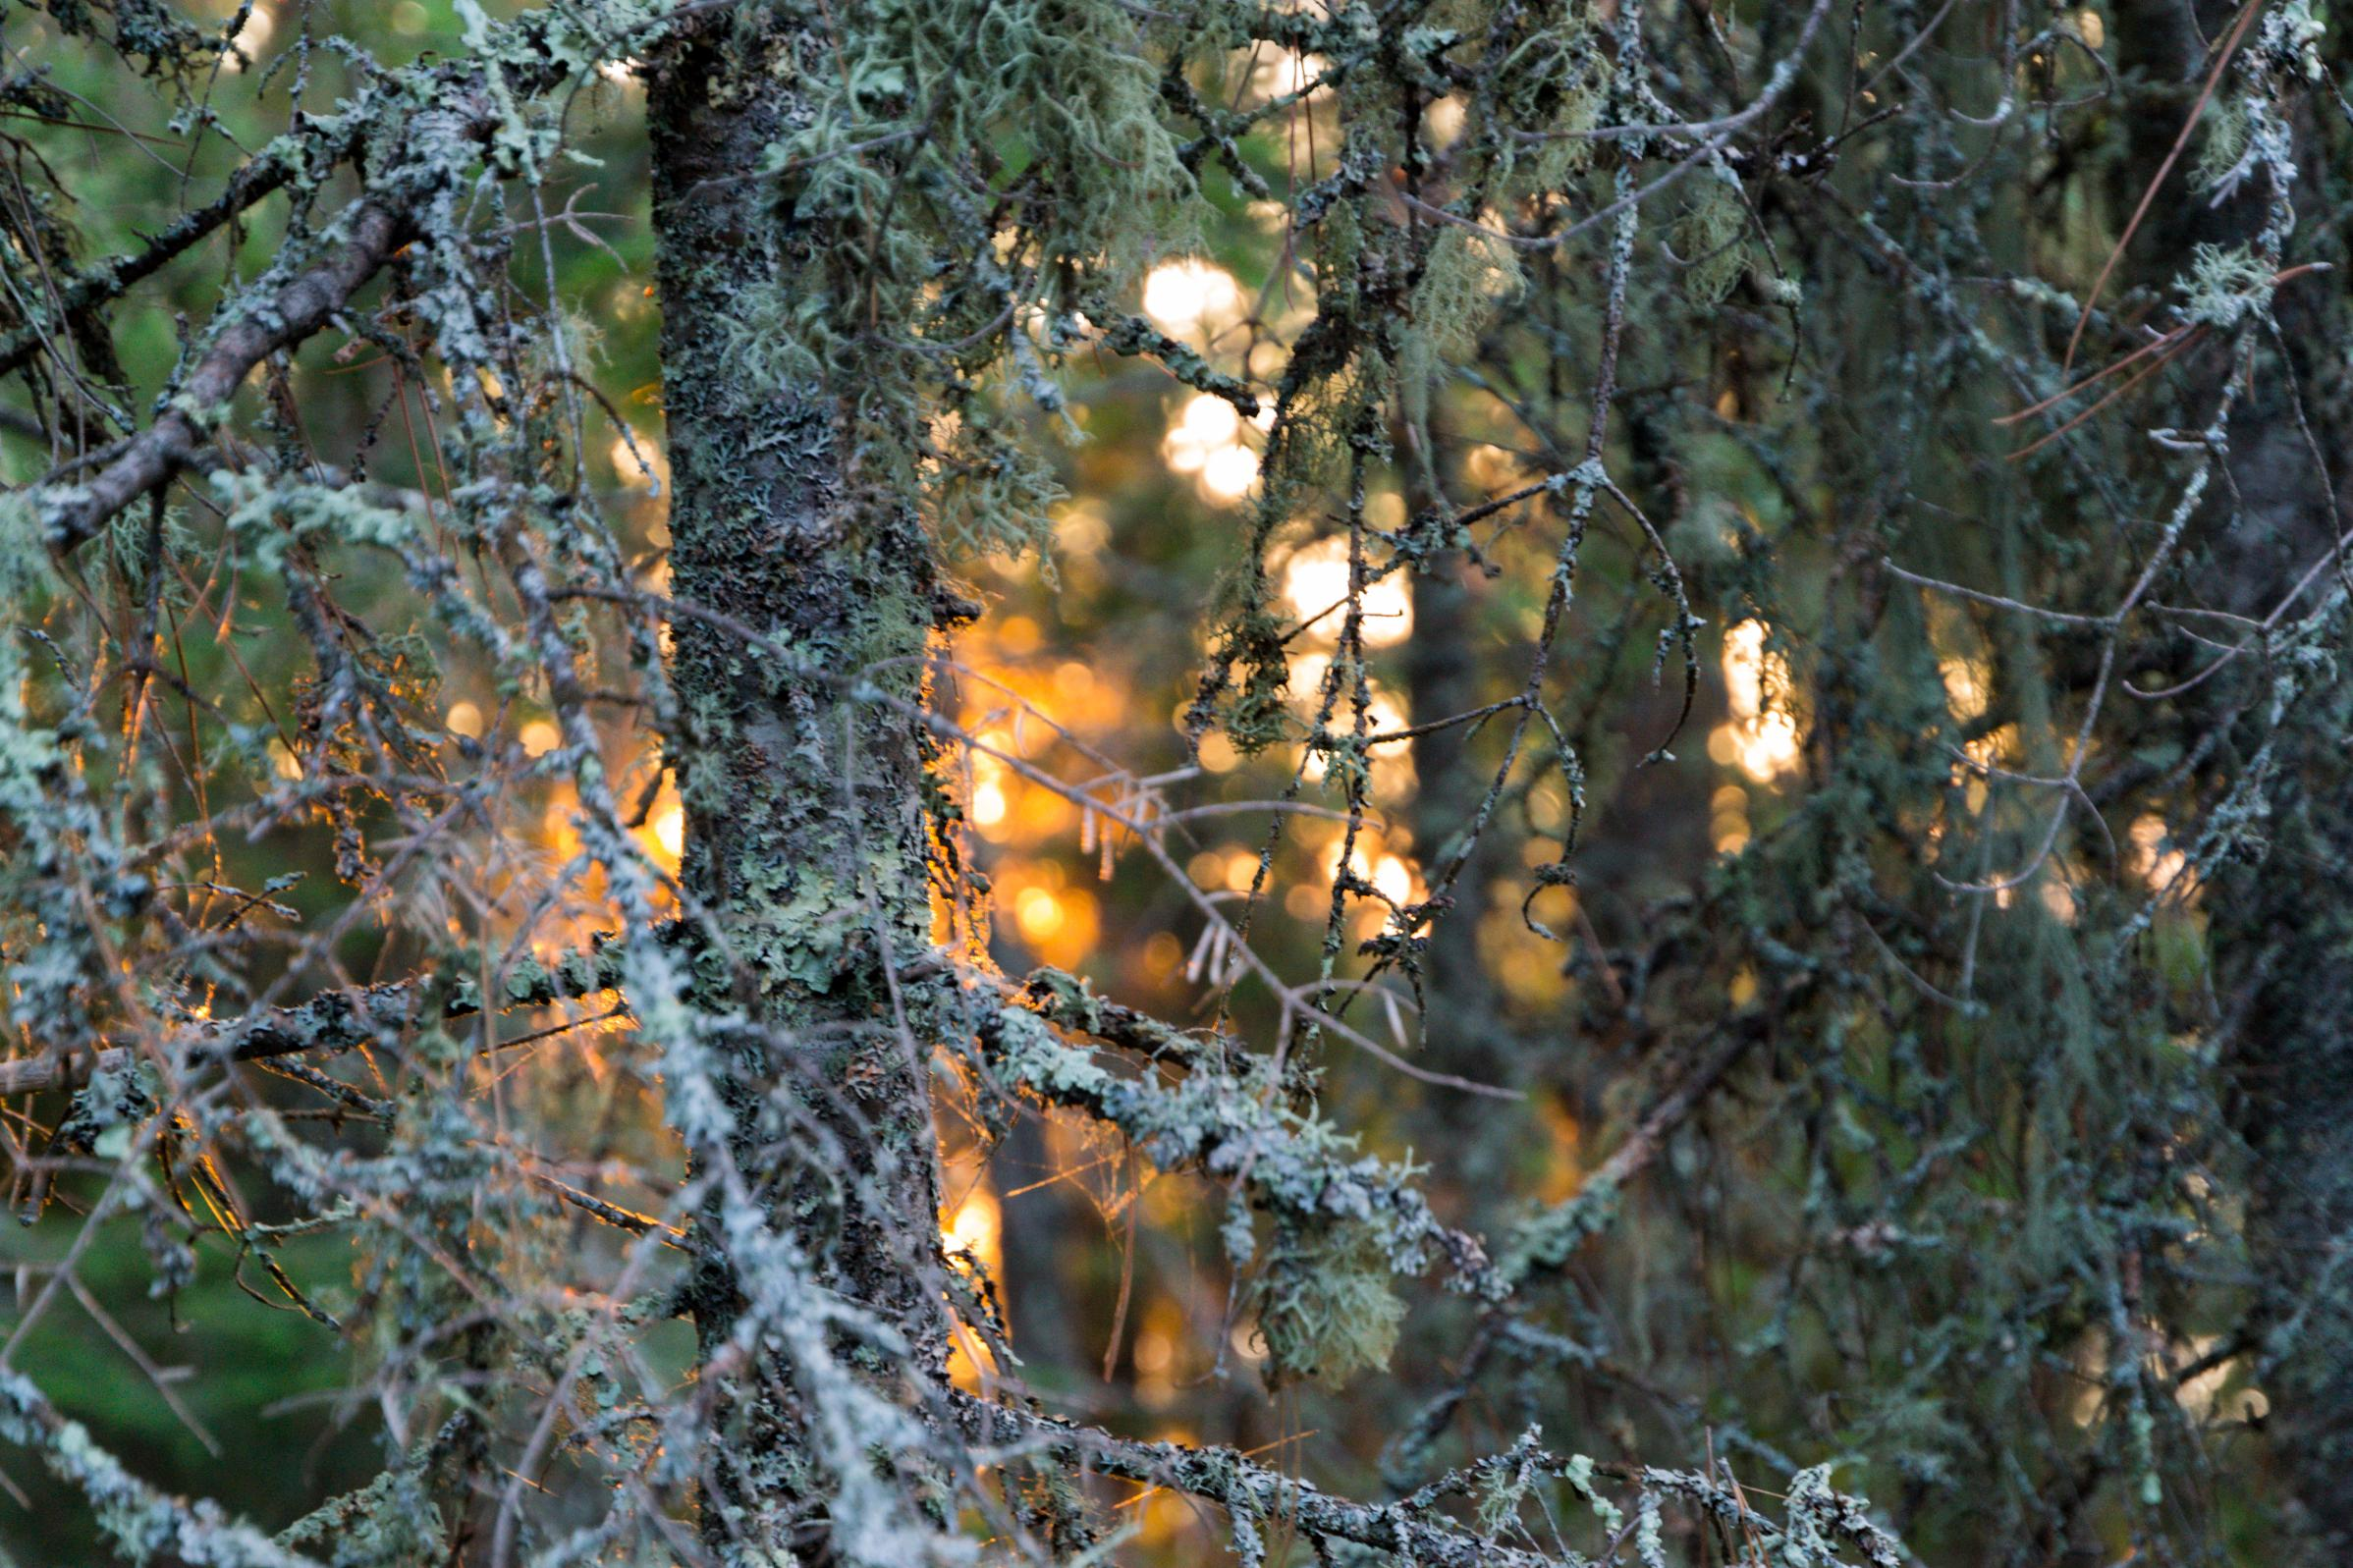 Sunset through the trees on Insula